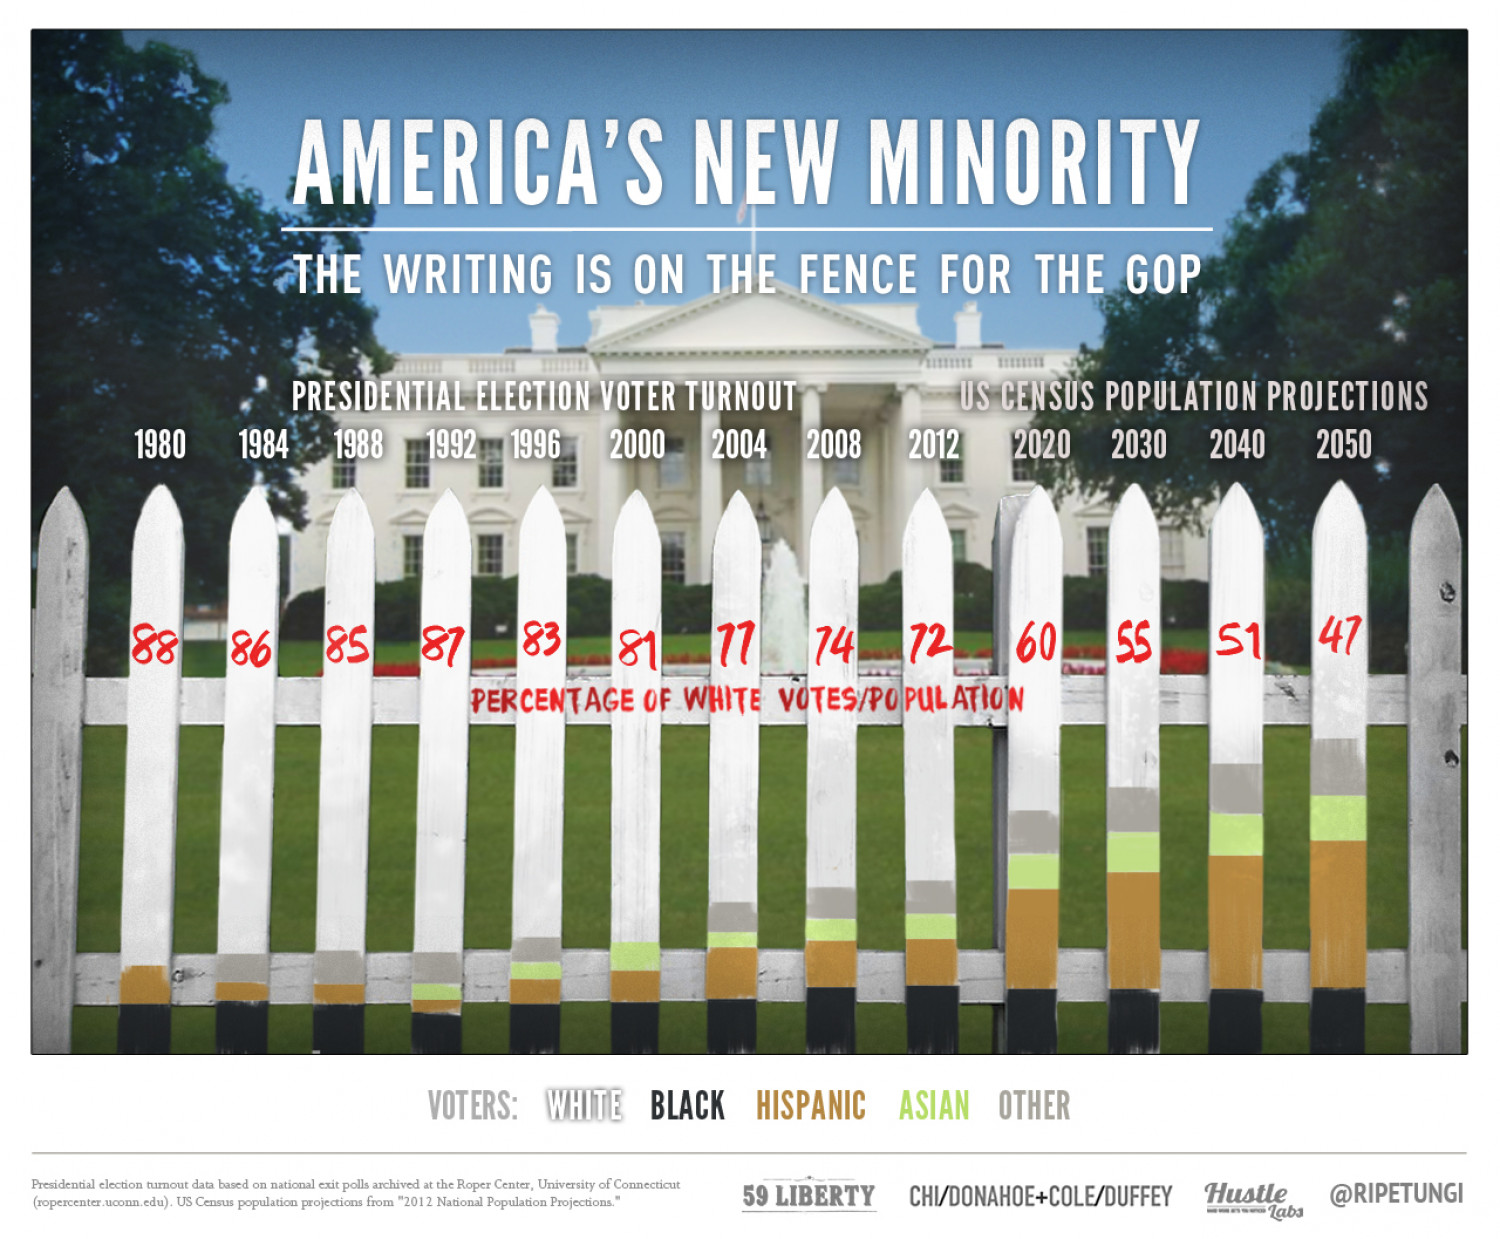 America's New Minority: The Writing is on the Fence for the GOP Infographic